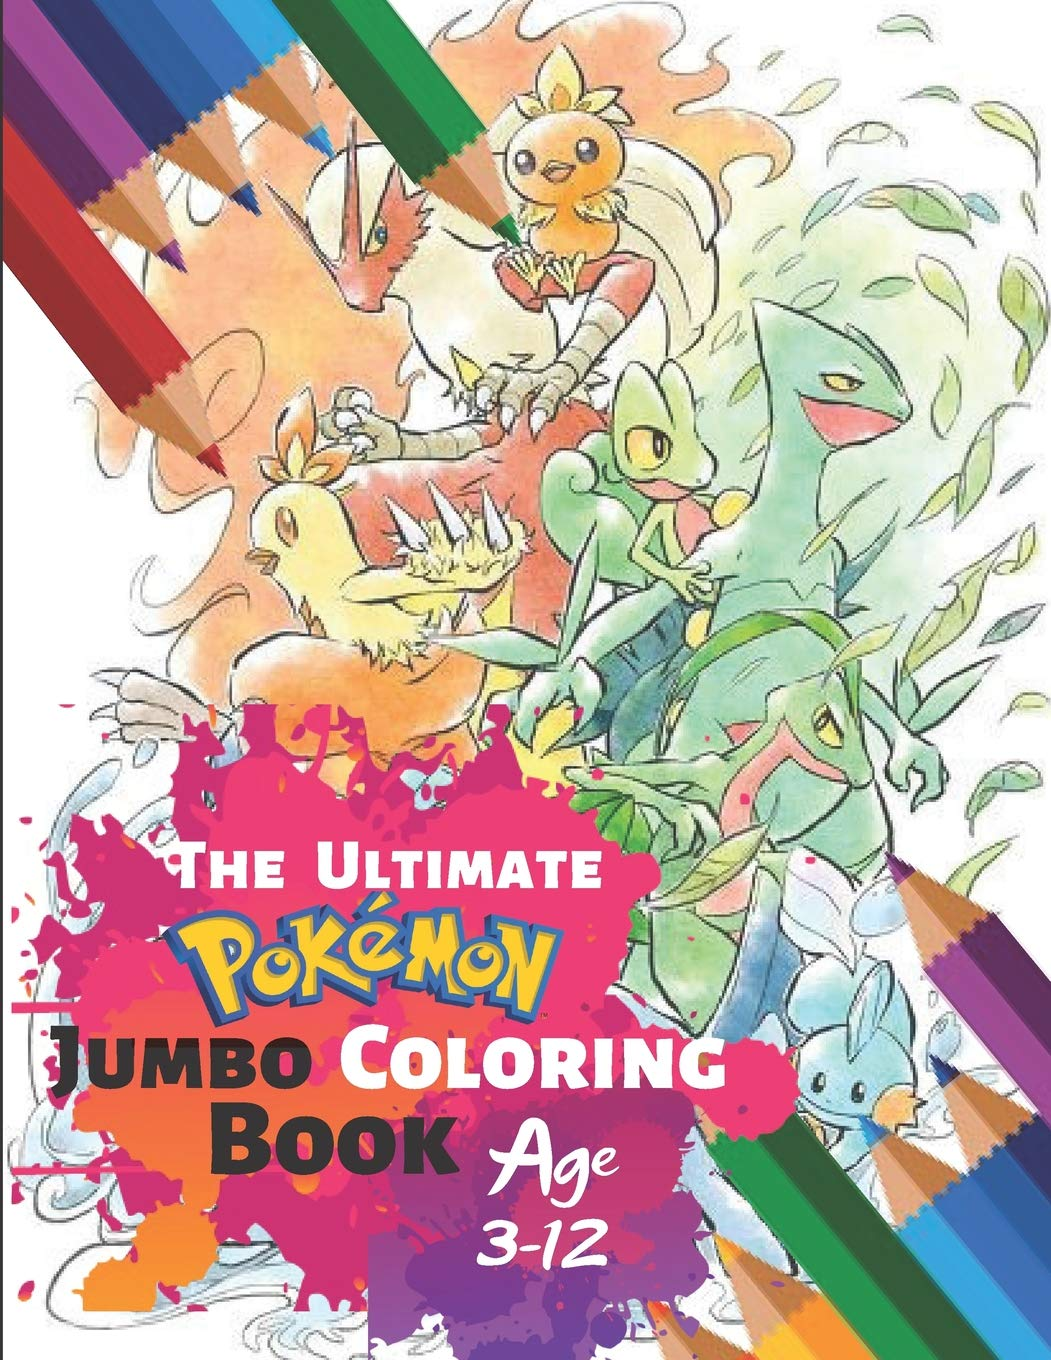 The Ultimate Pokemon Jumbo Coloring Book Age 3 12 Awesome